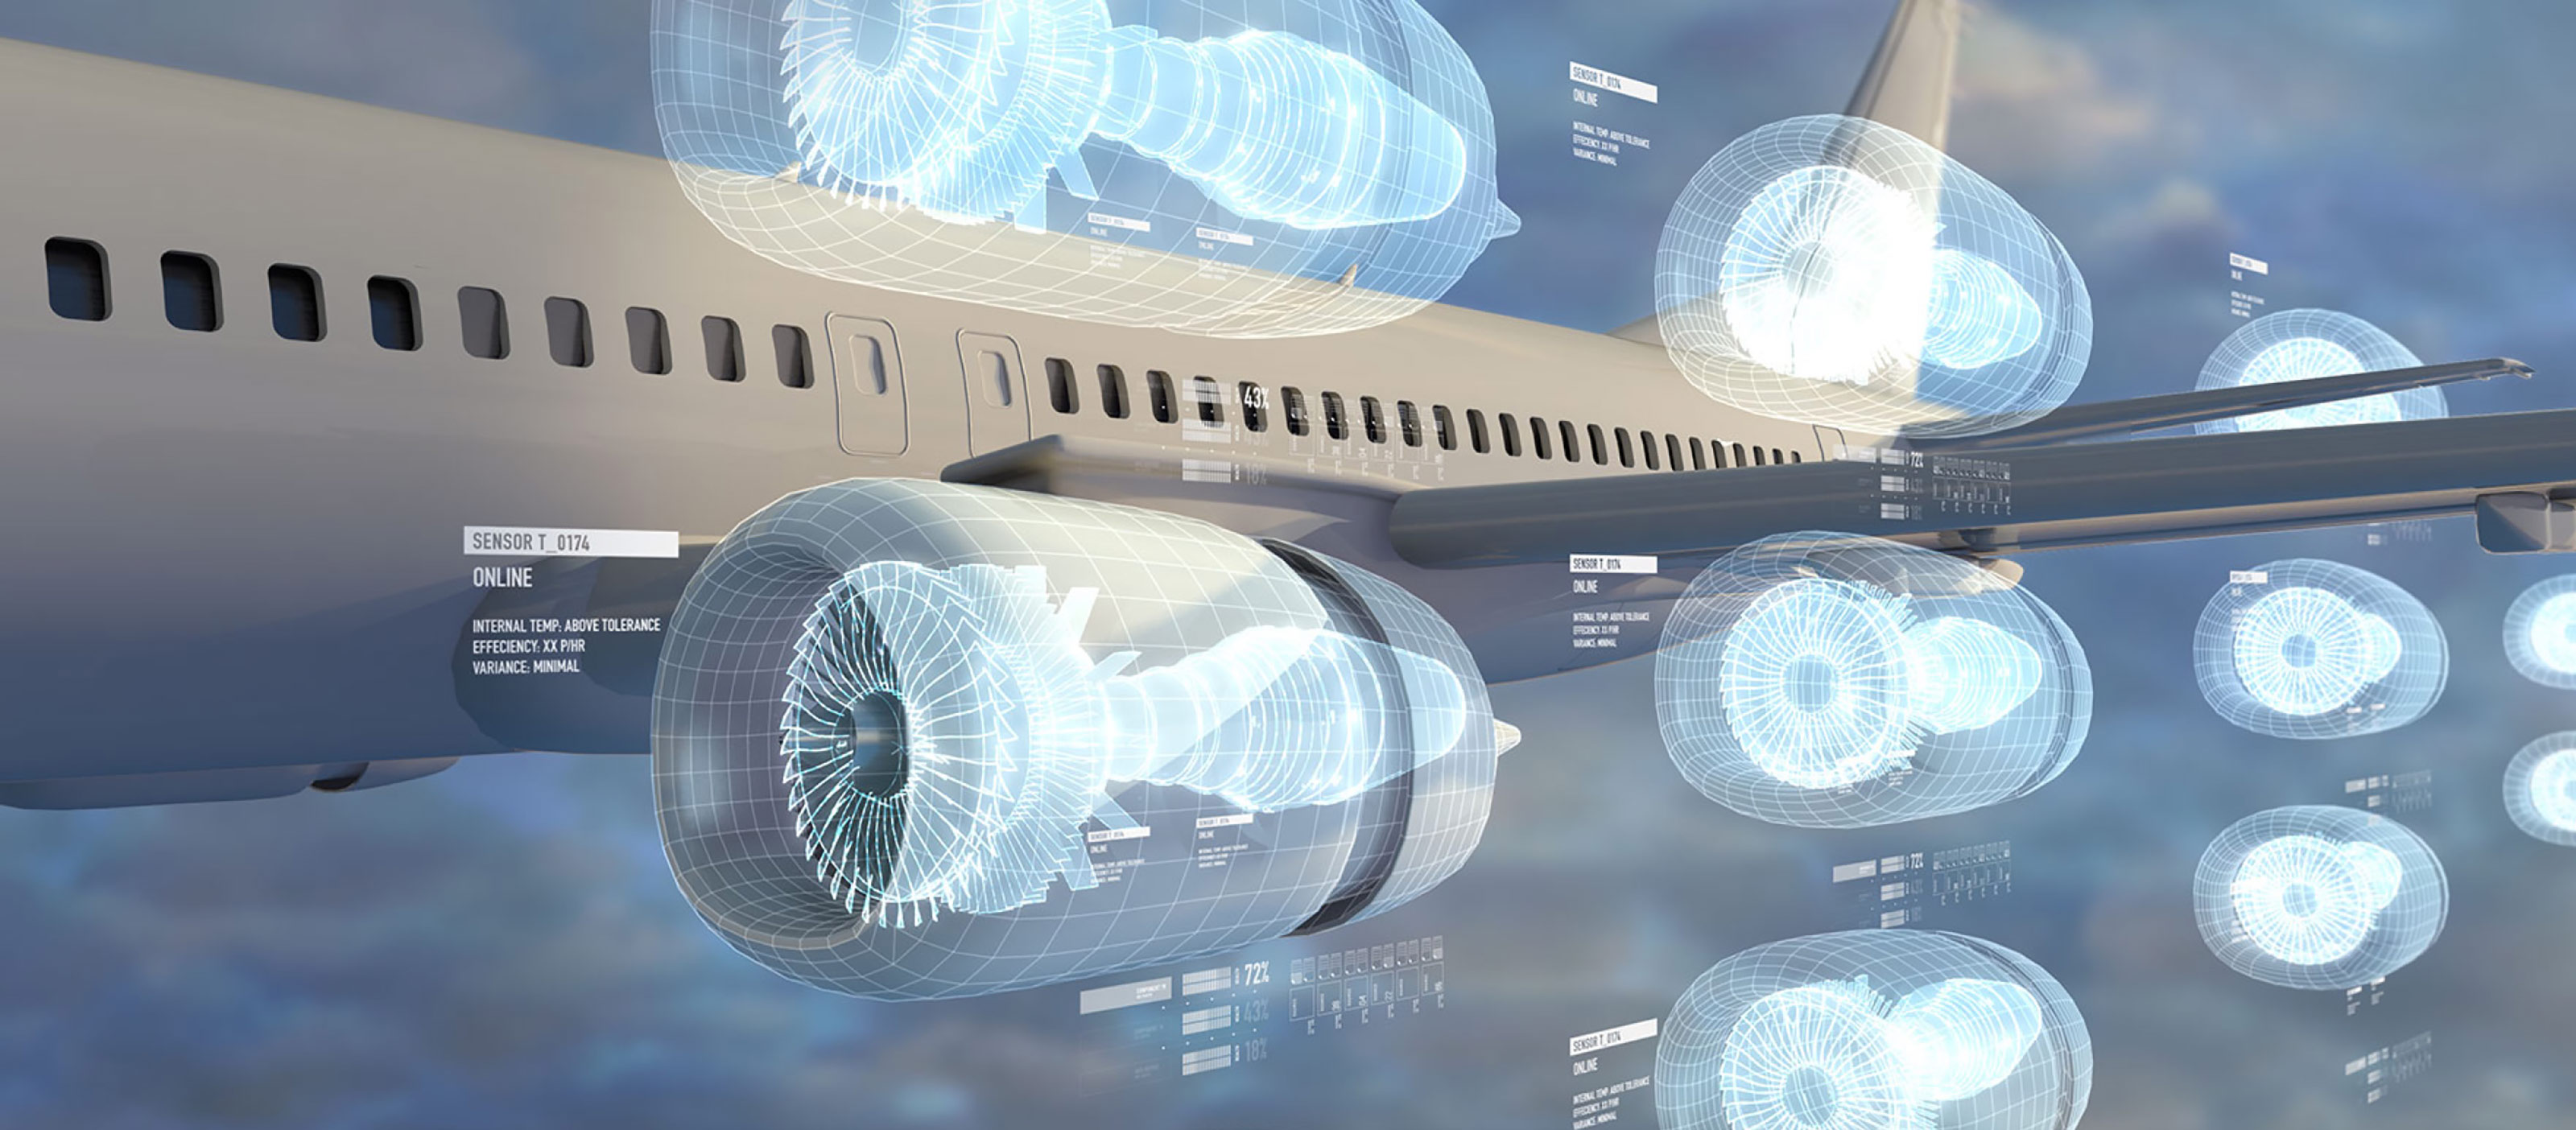 developing a digital twin from an aircraft